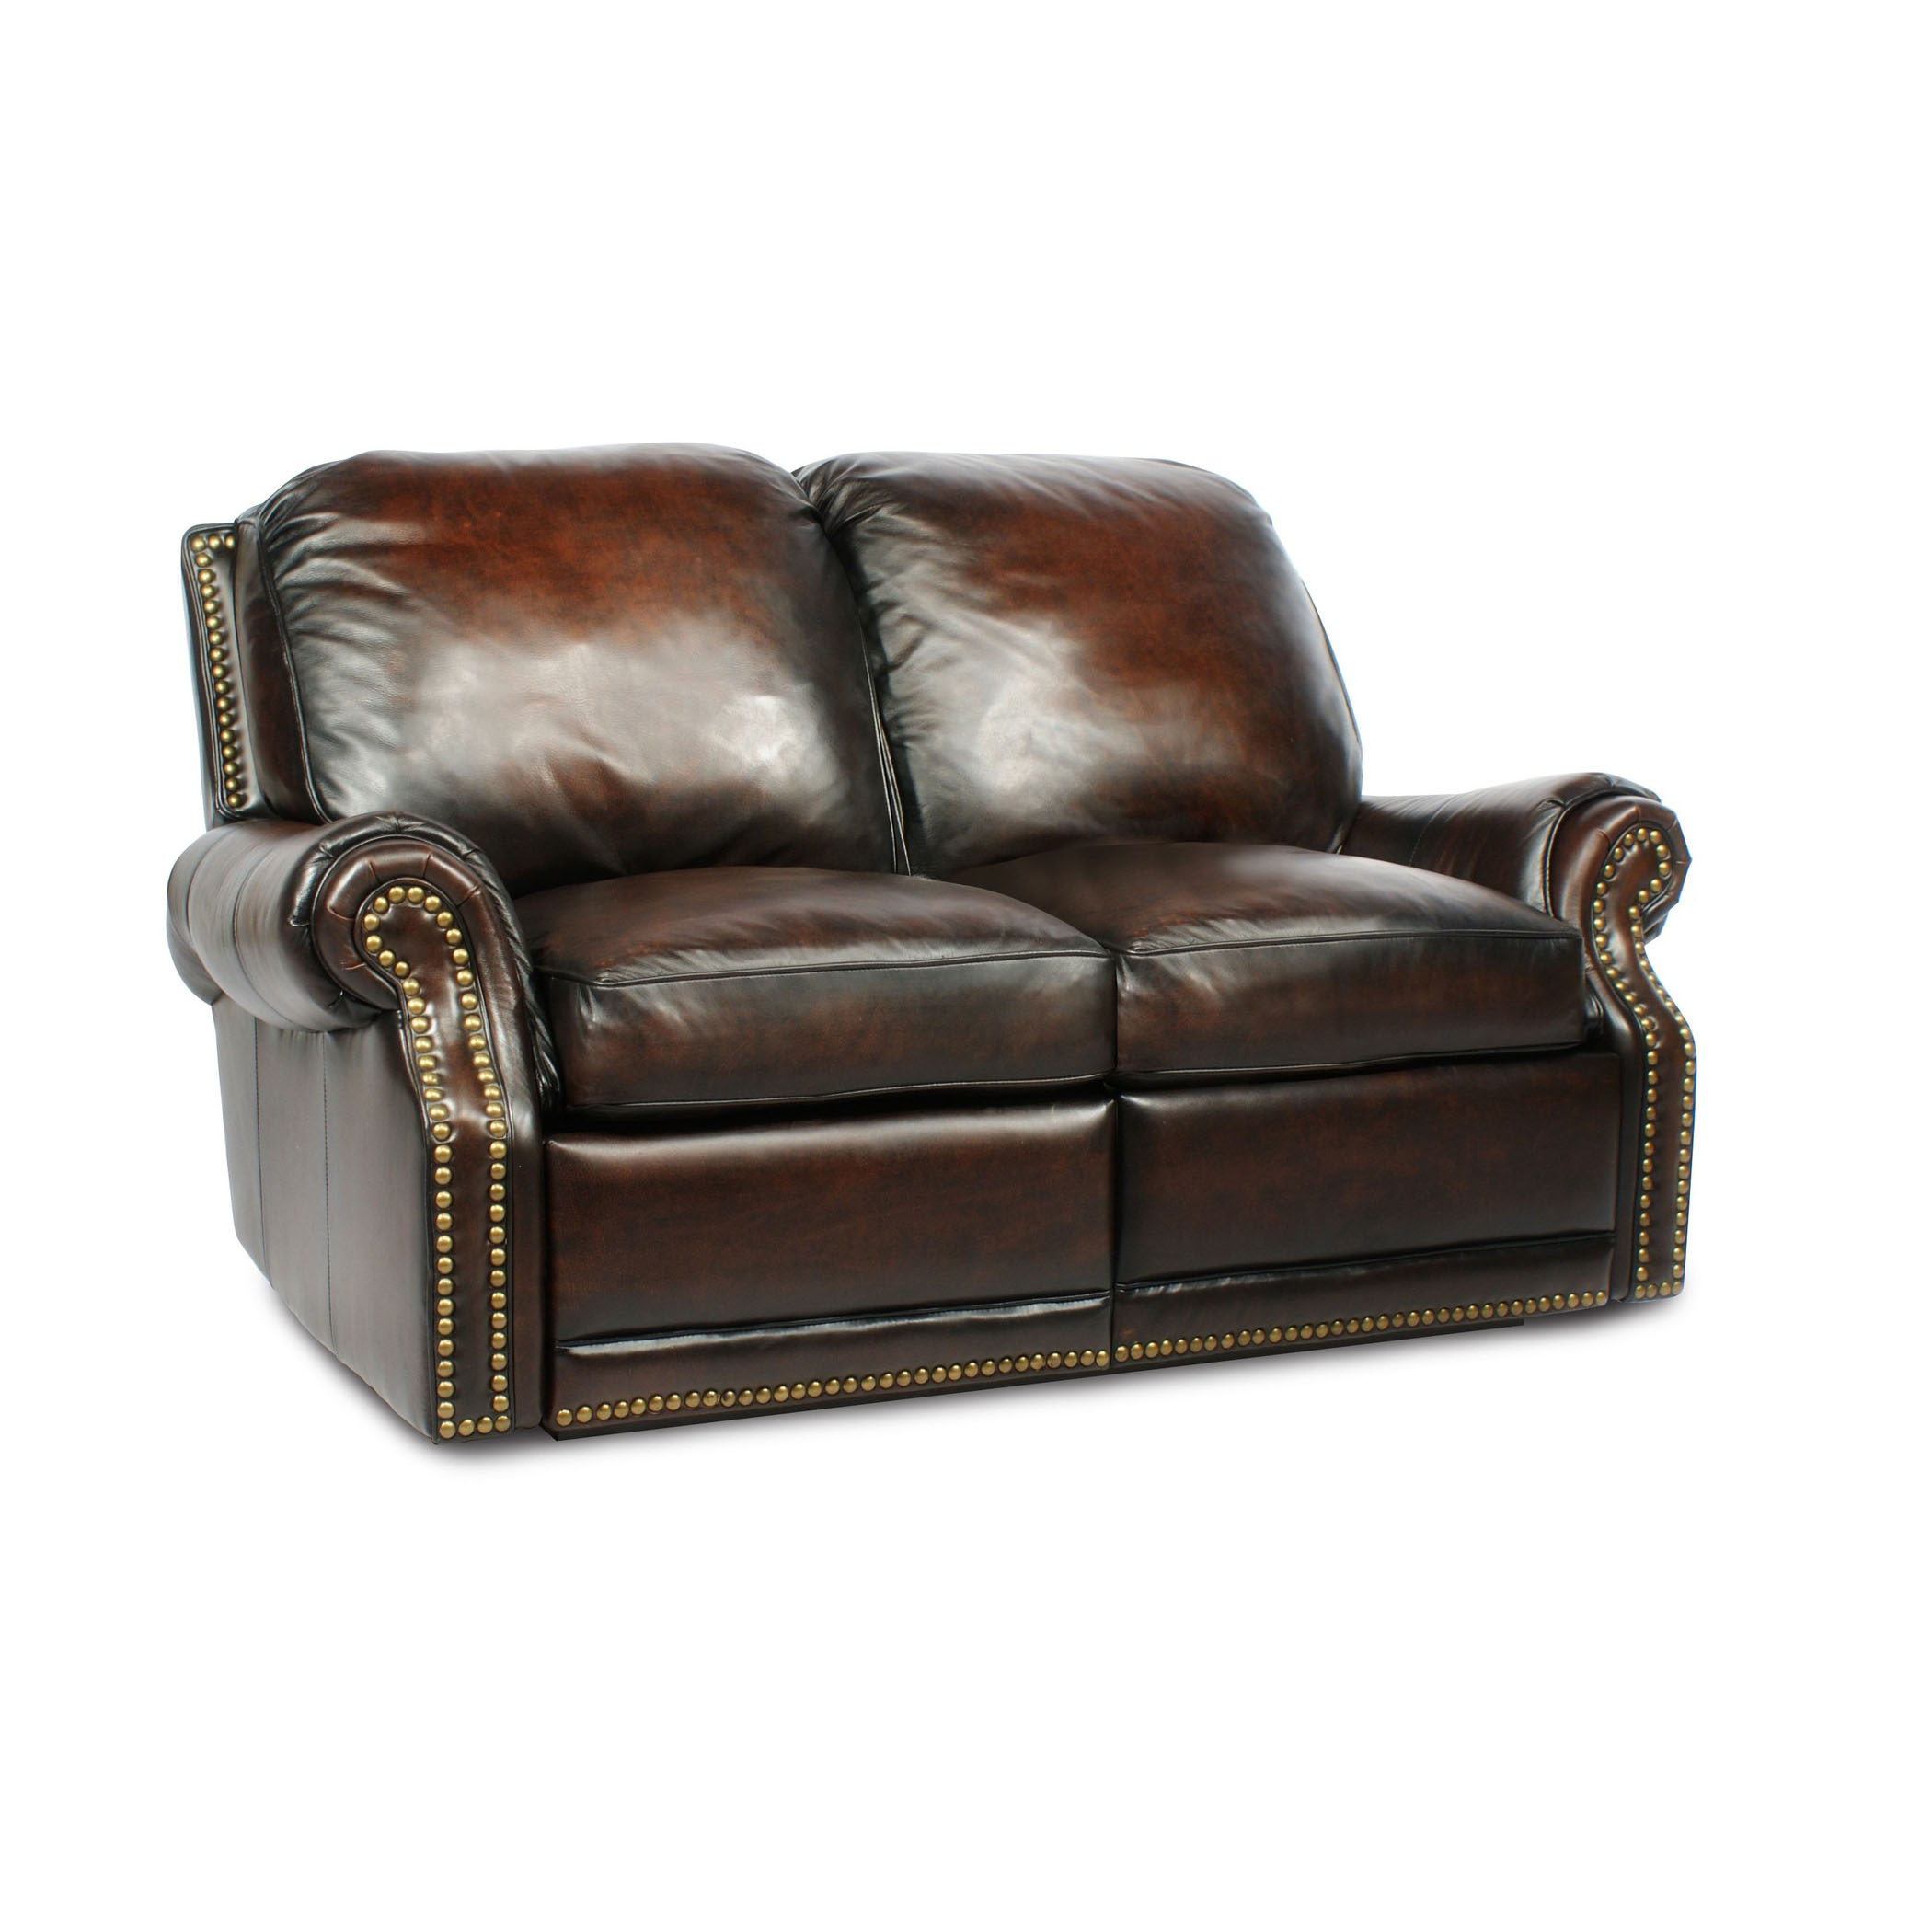 Barcalounger premier ii leather 2 seat loveseat sofa leather 2 seat loveseat sofa furniture Leather loveseat recliners